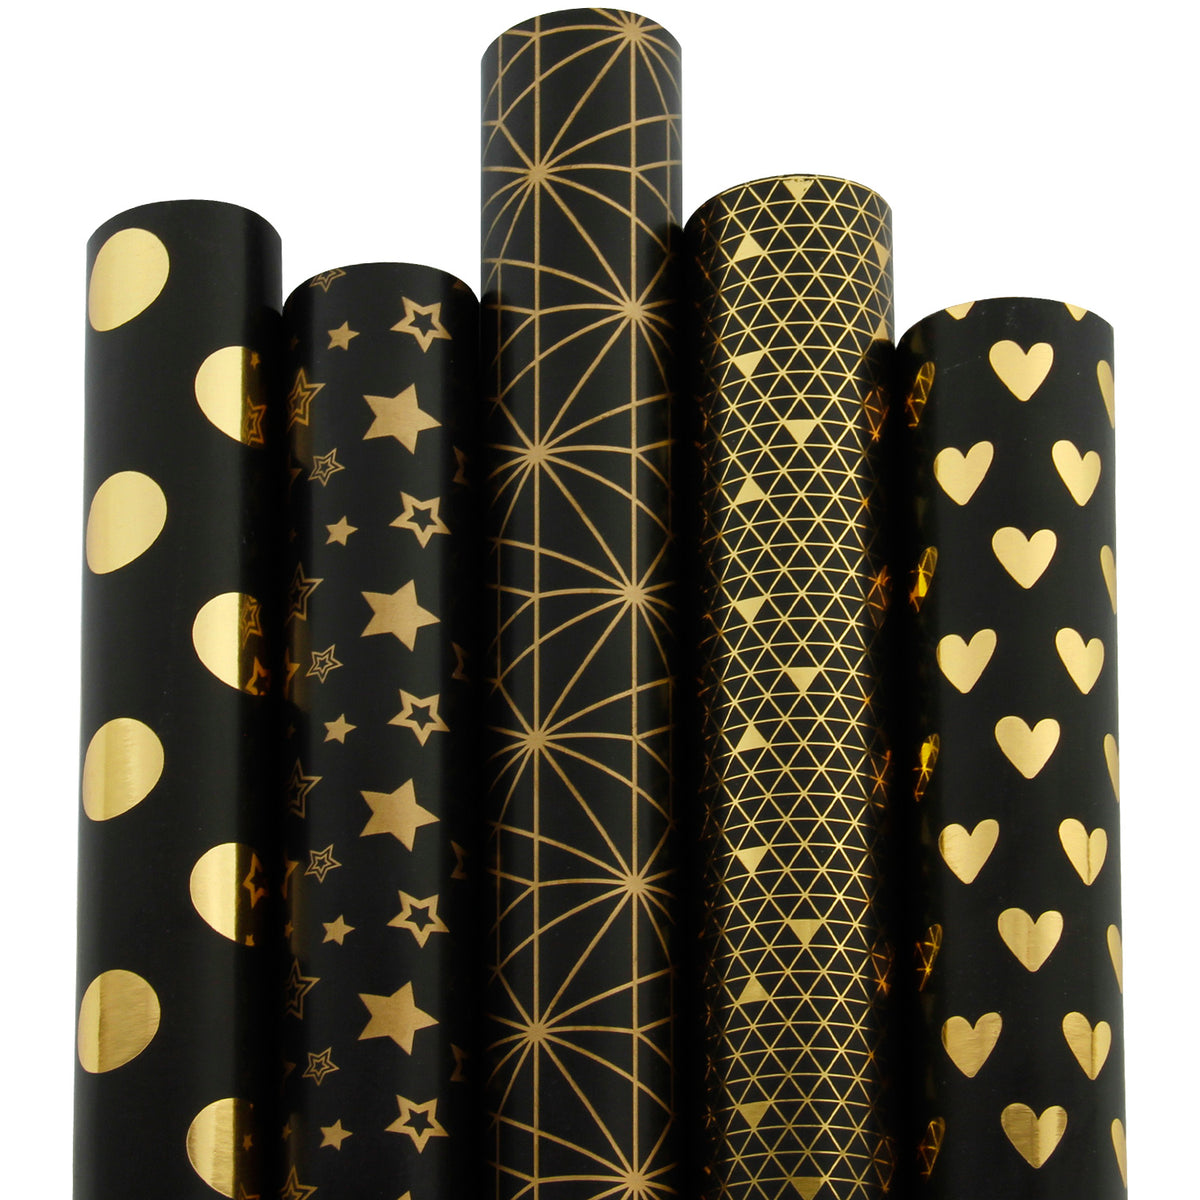 Wrapaholic-Gold-Foil-Printing-Gift-Wrapping-Paper-Roll-5 Rolls-Set-Black-1